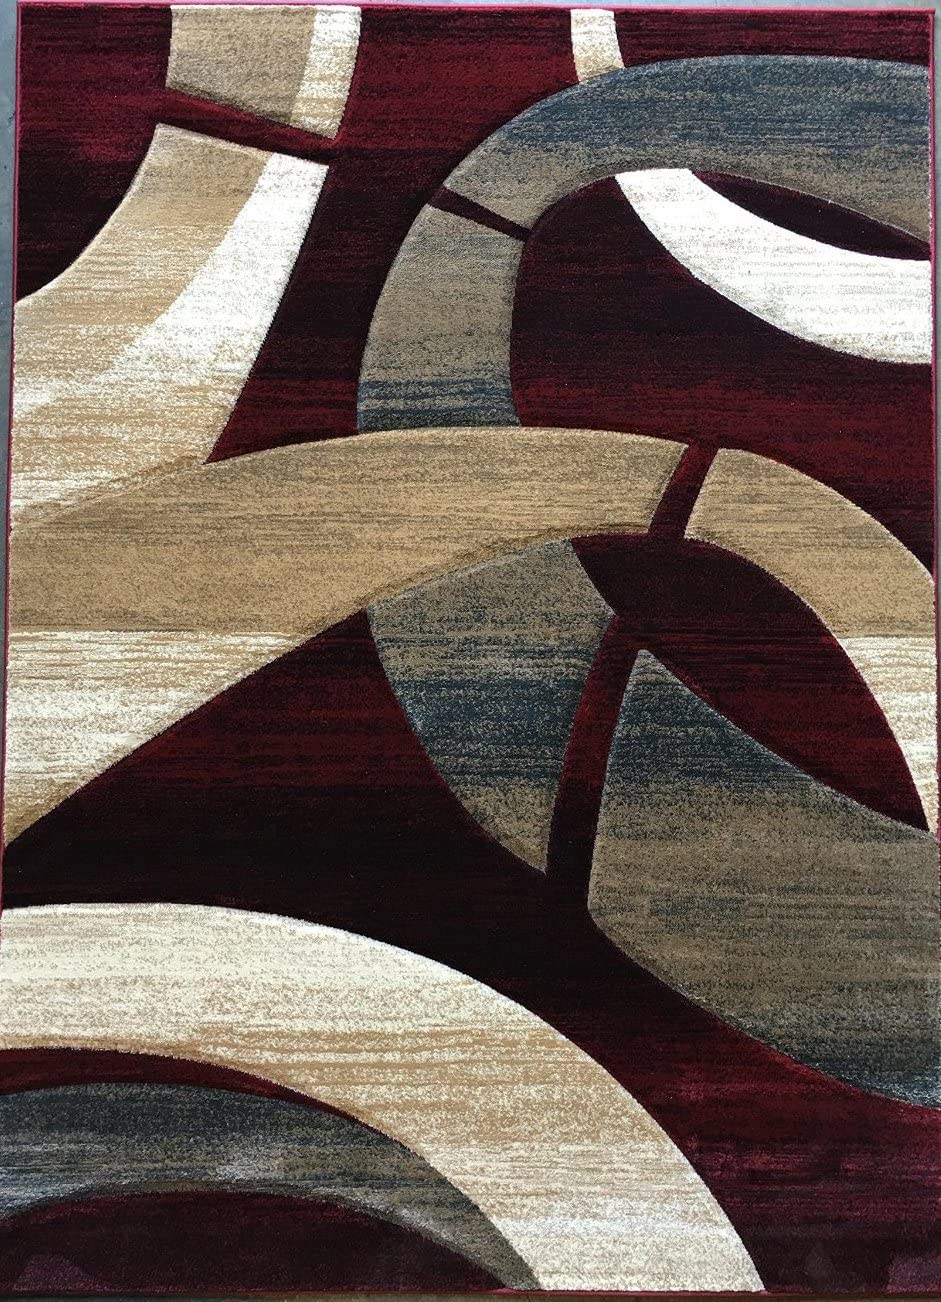 Sculpture Modern Area Rug Red Burgundy Design 248 (5 feet 2inches X 7 feet 1 inch)